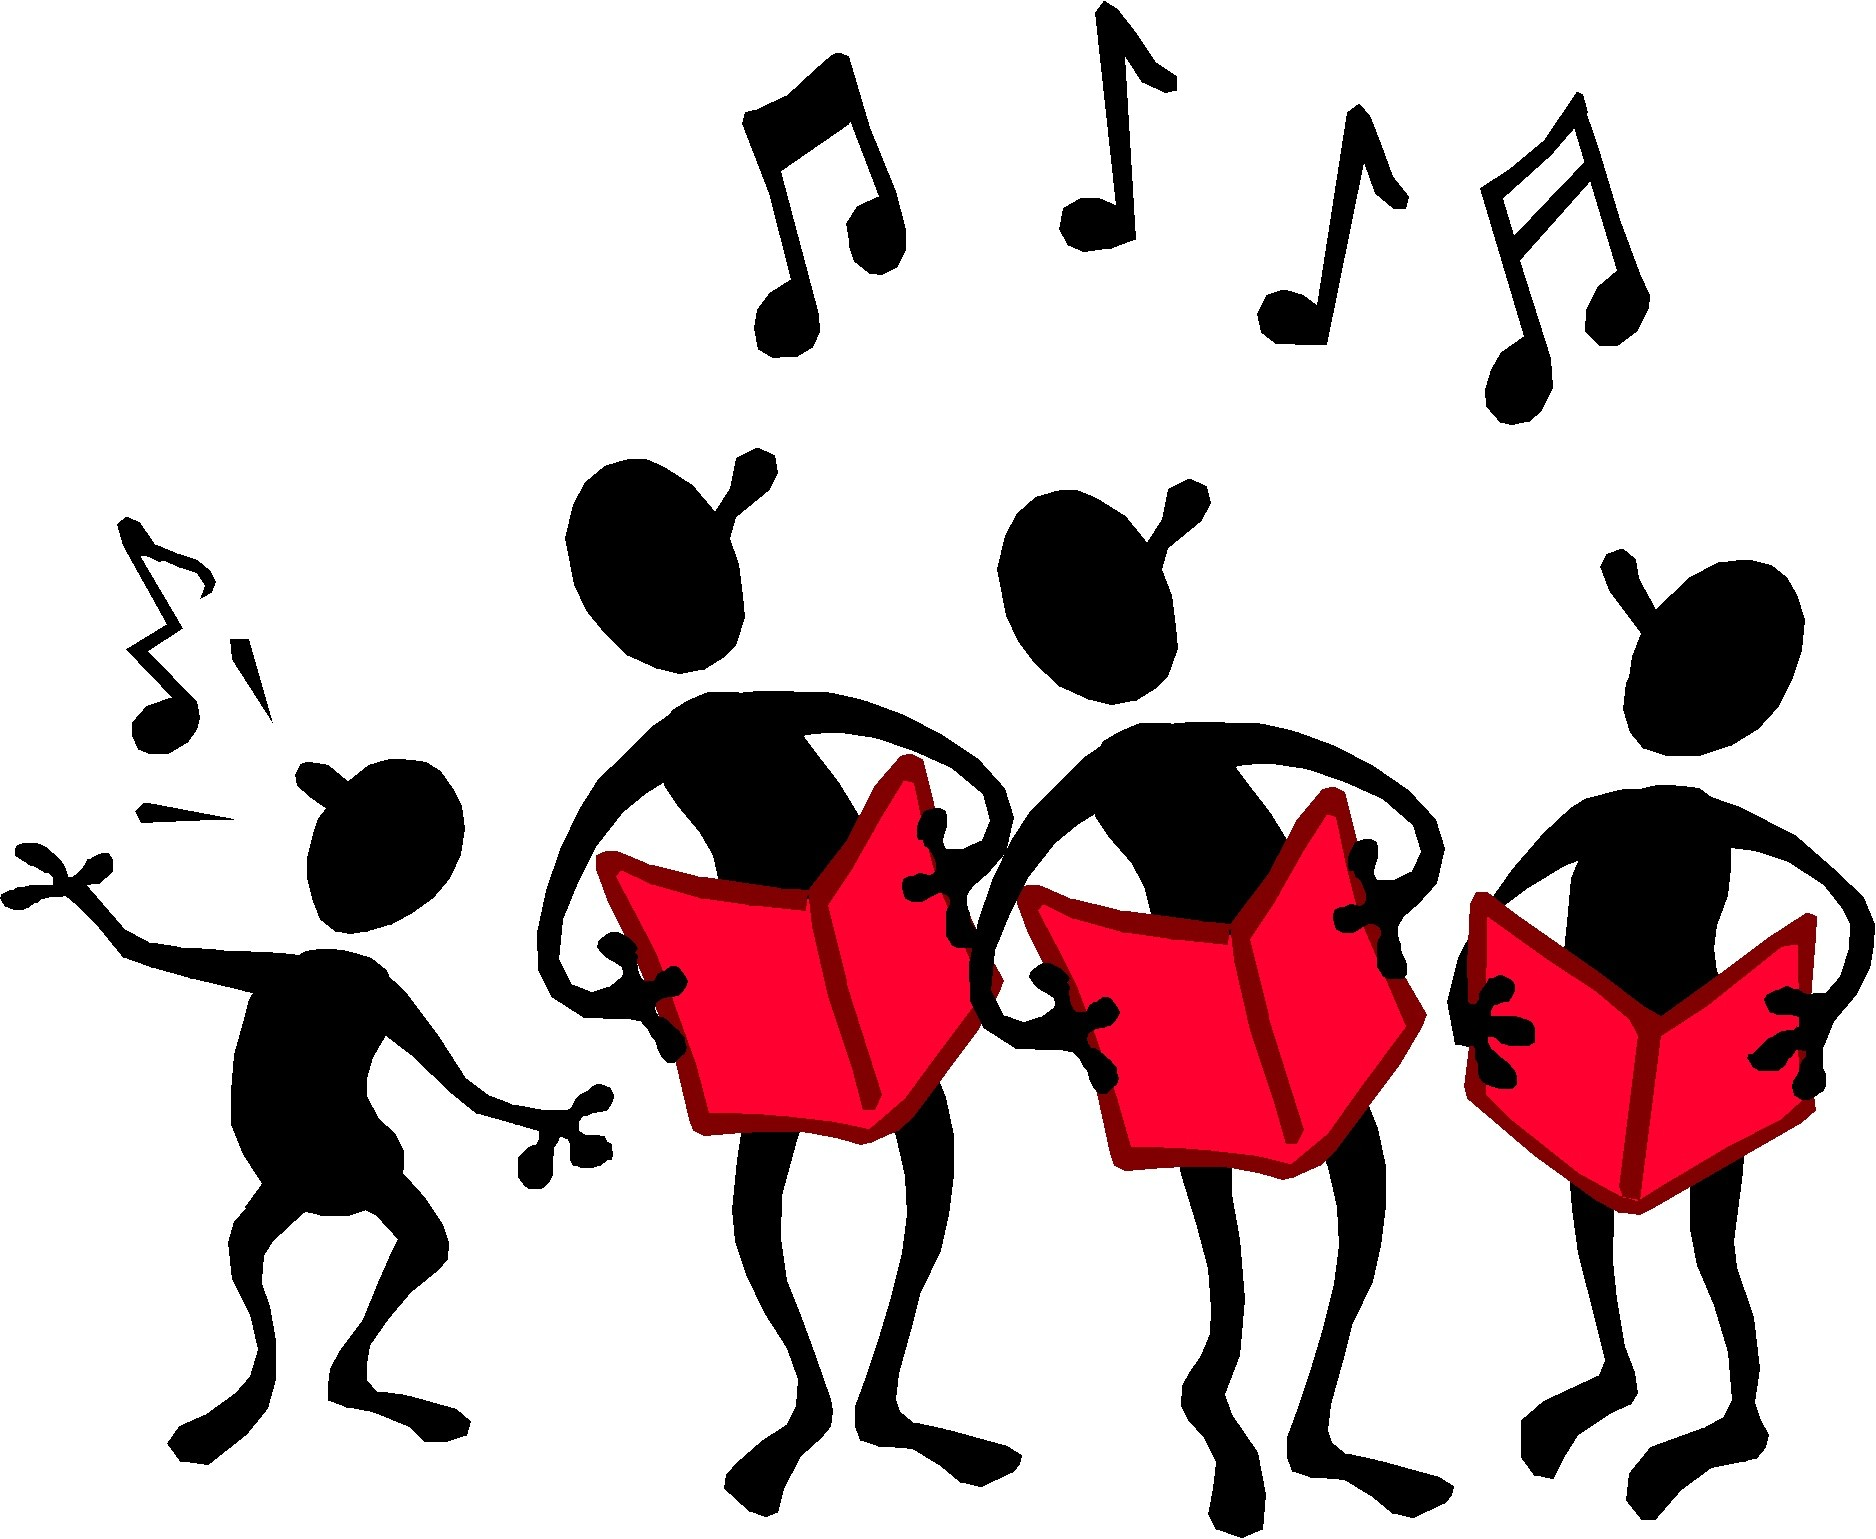 Choir Singing Clip Art Free N6 free image.